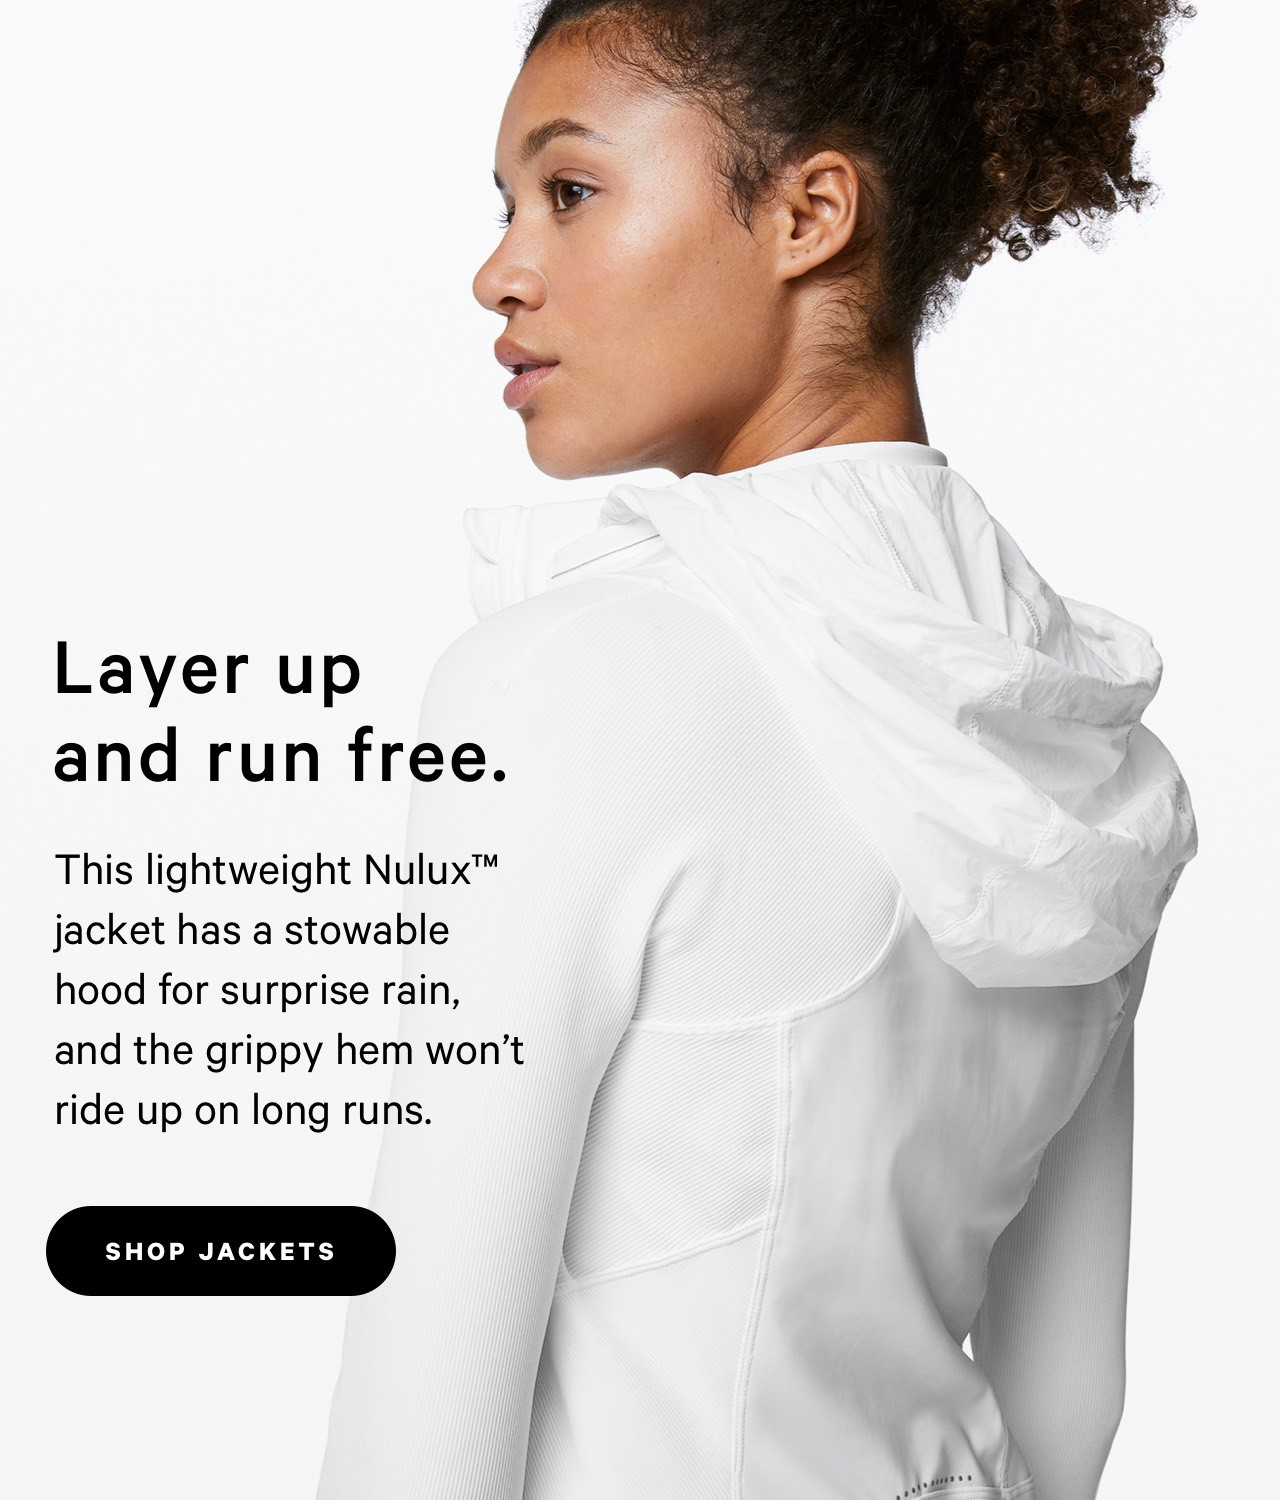 Layer up and run free. - SHOP JACKETS